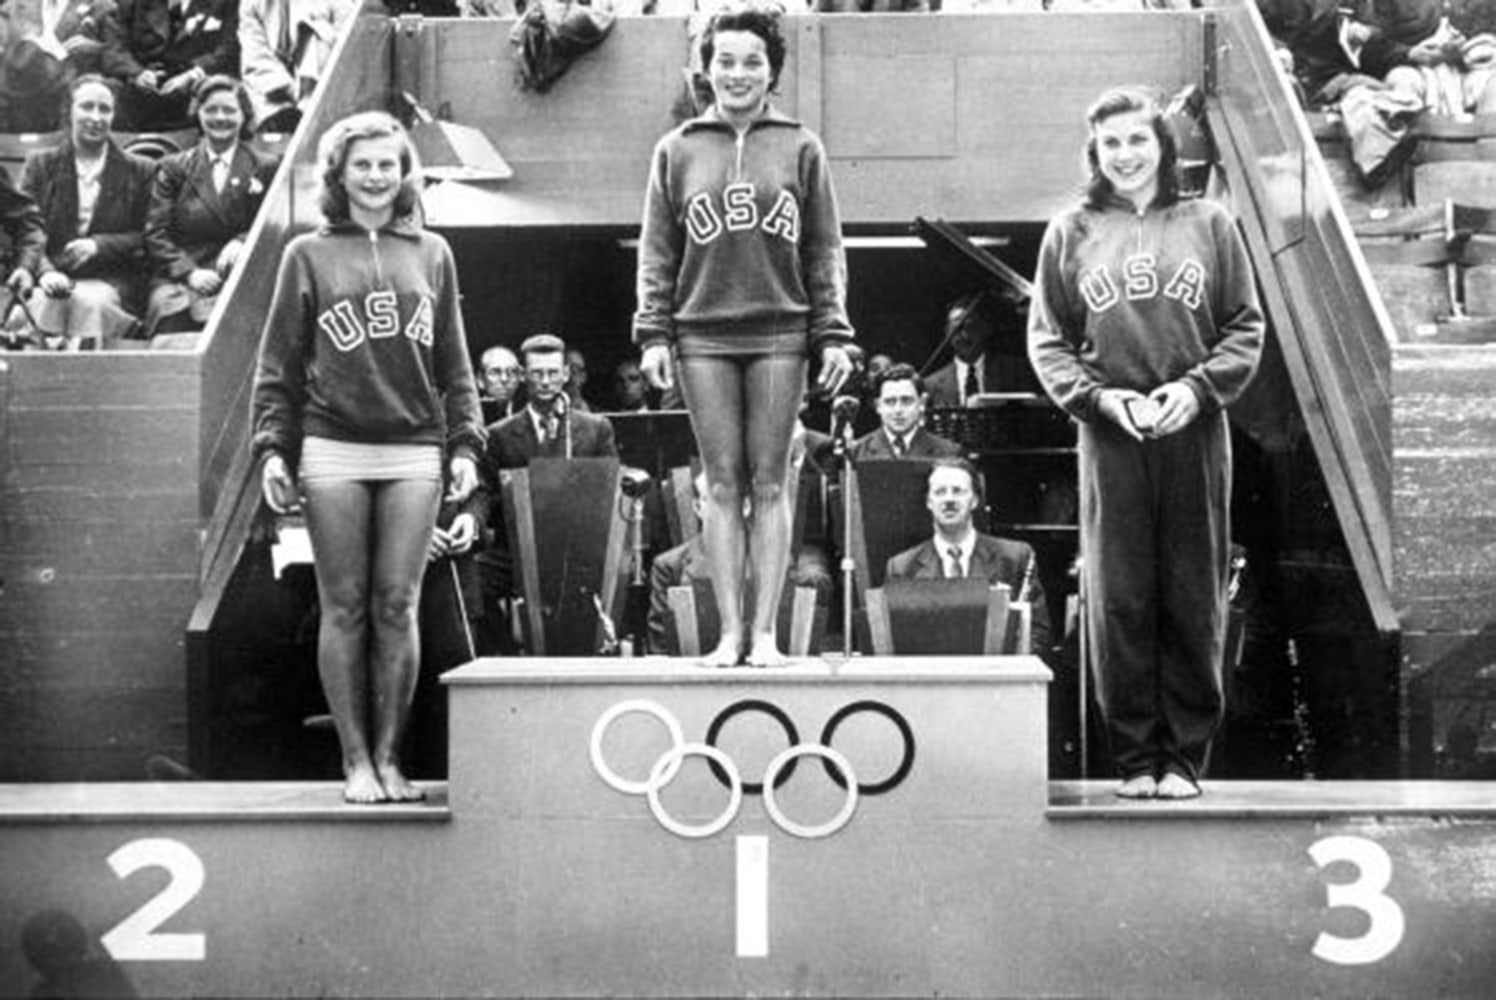 1948 olympic games london england springboard ing united states